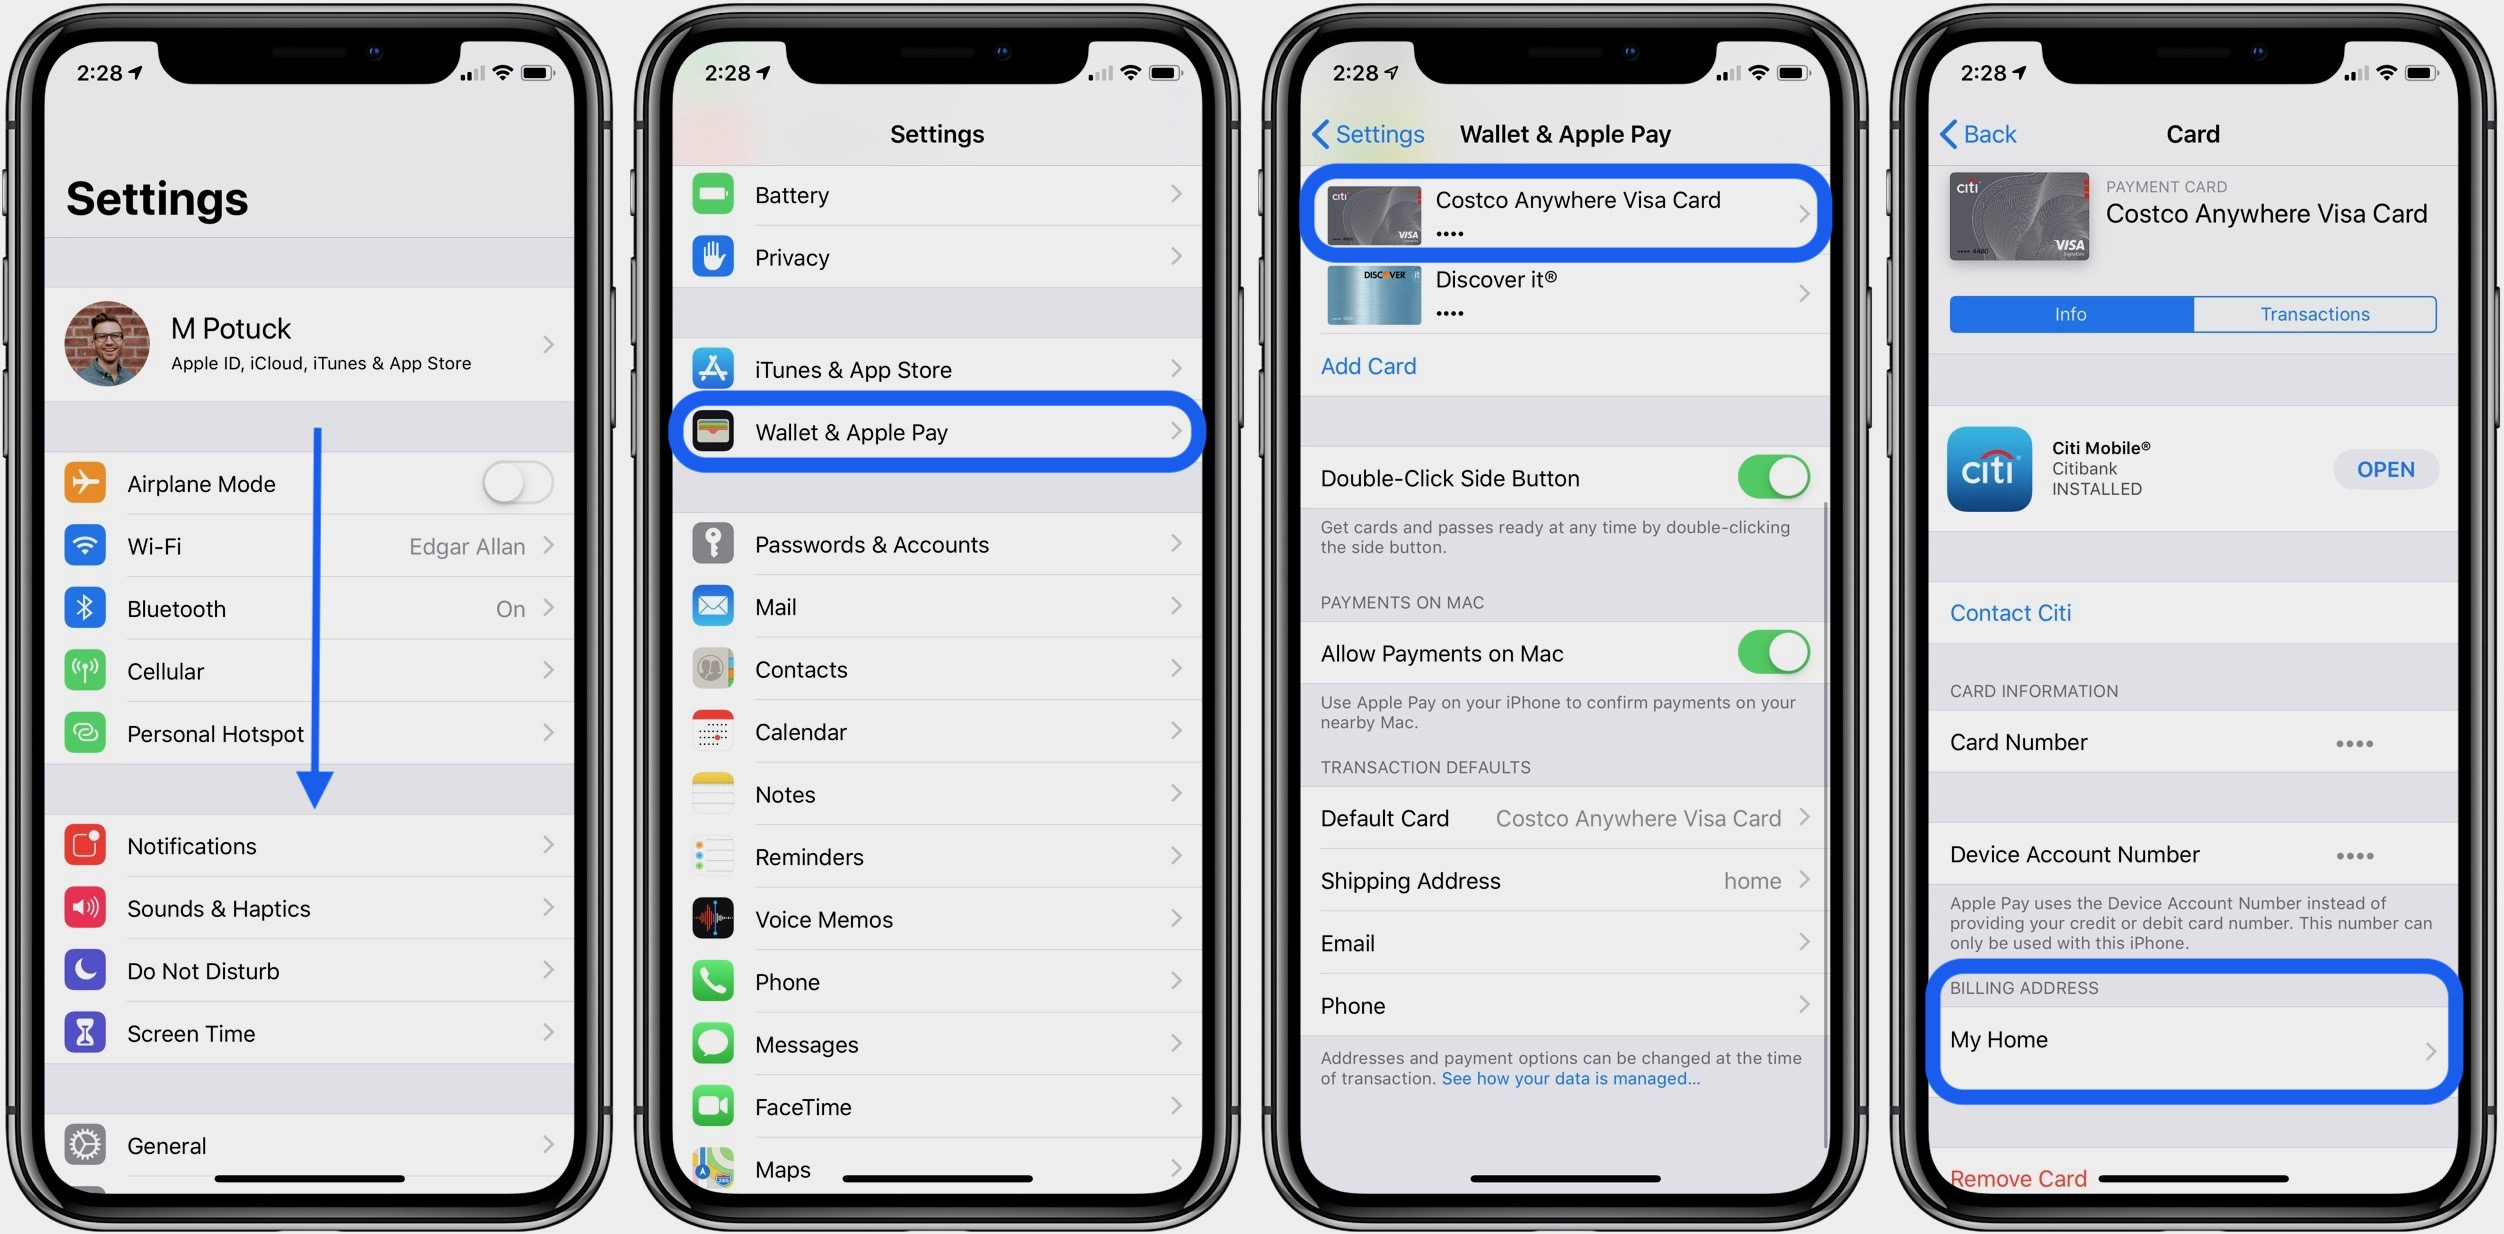 Iphone Ipad How To Change Apple Pay Billing And Shipping Address 9to5mac